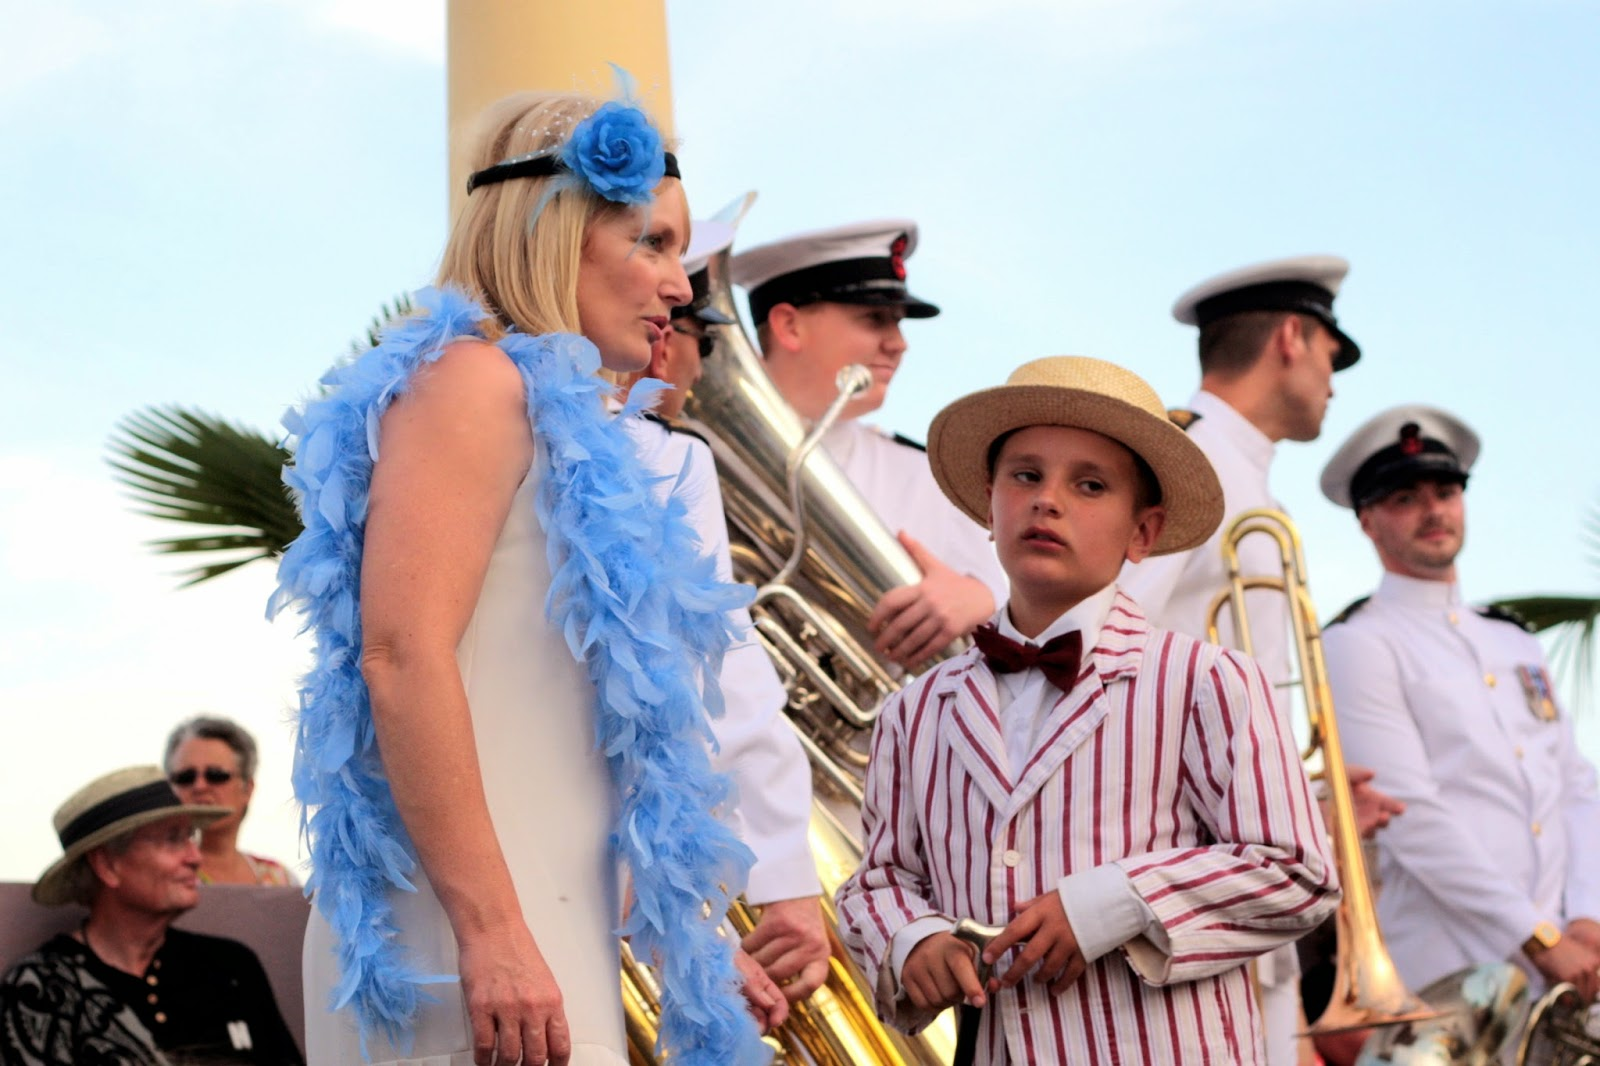 A woman wears a blue feather boa. Her son wears a stripped blazer, a straw boater, and a petulant look.